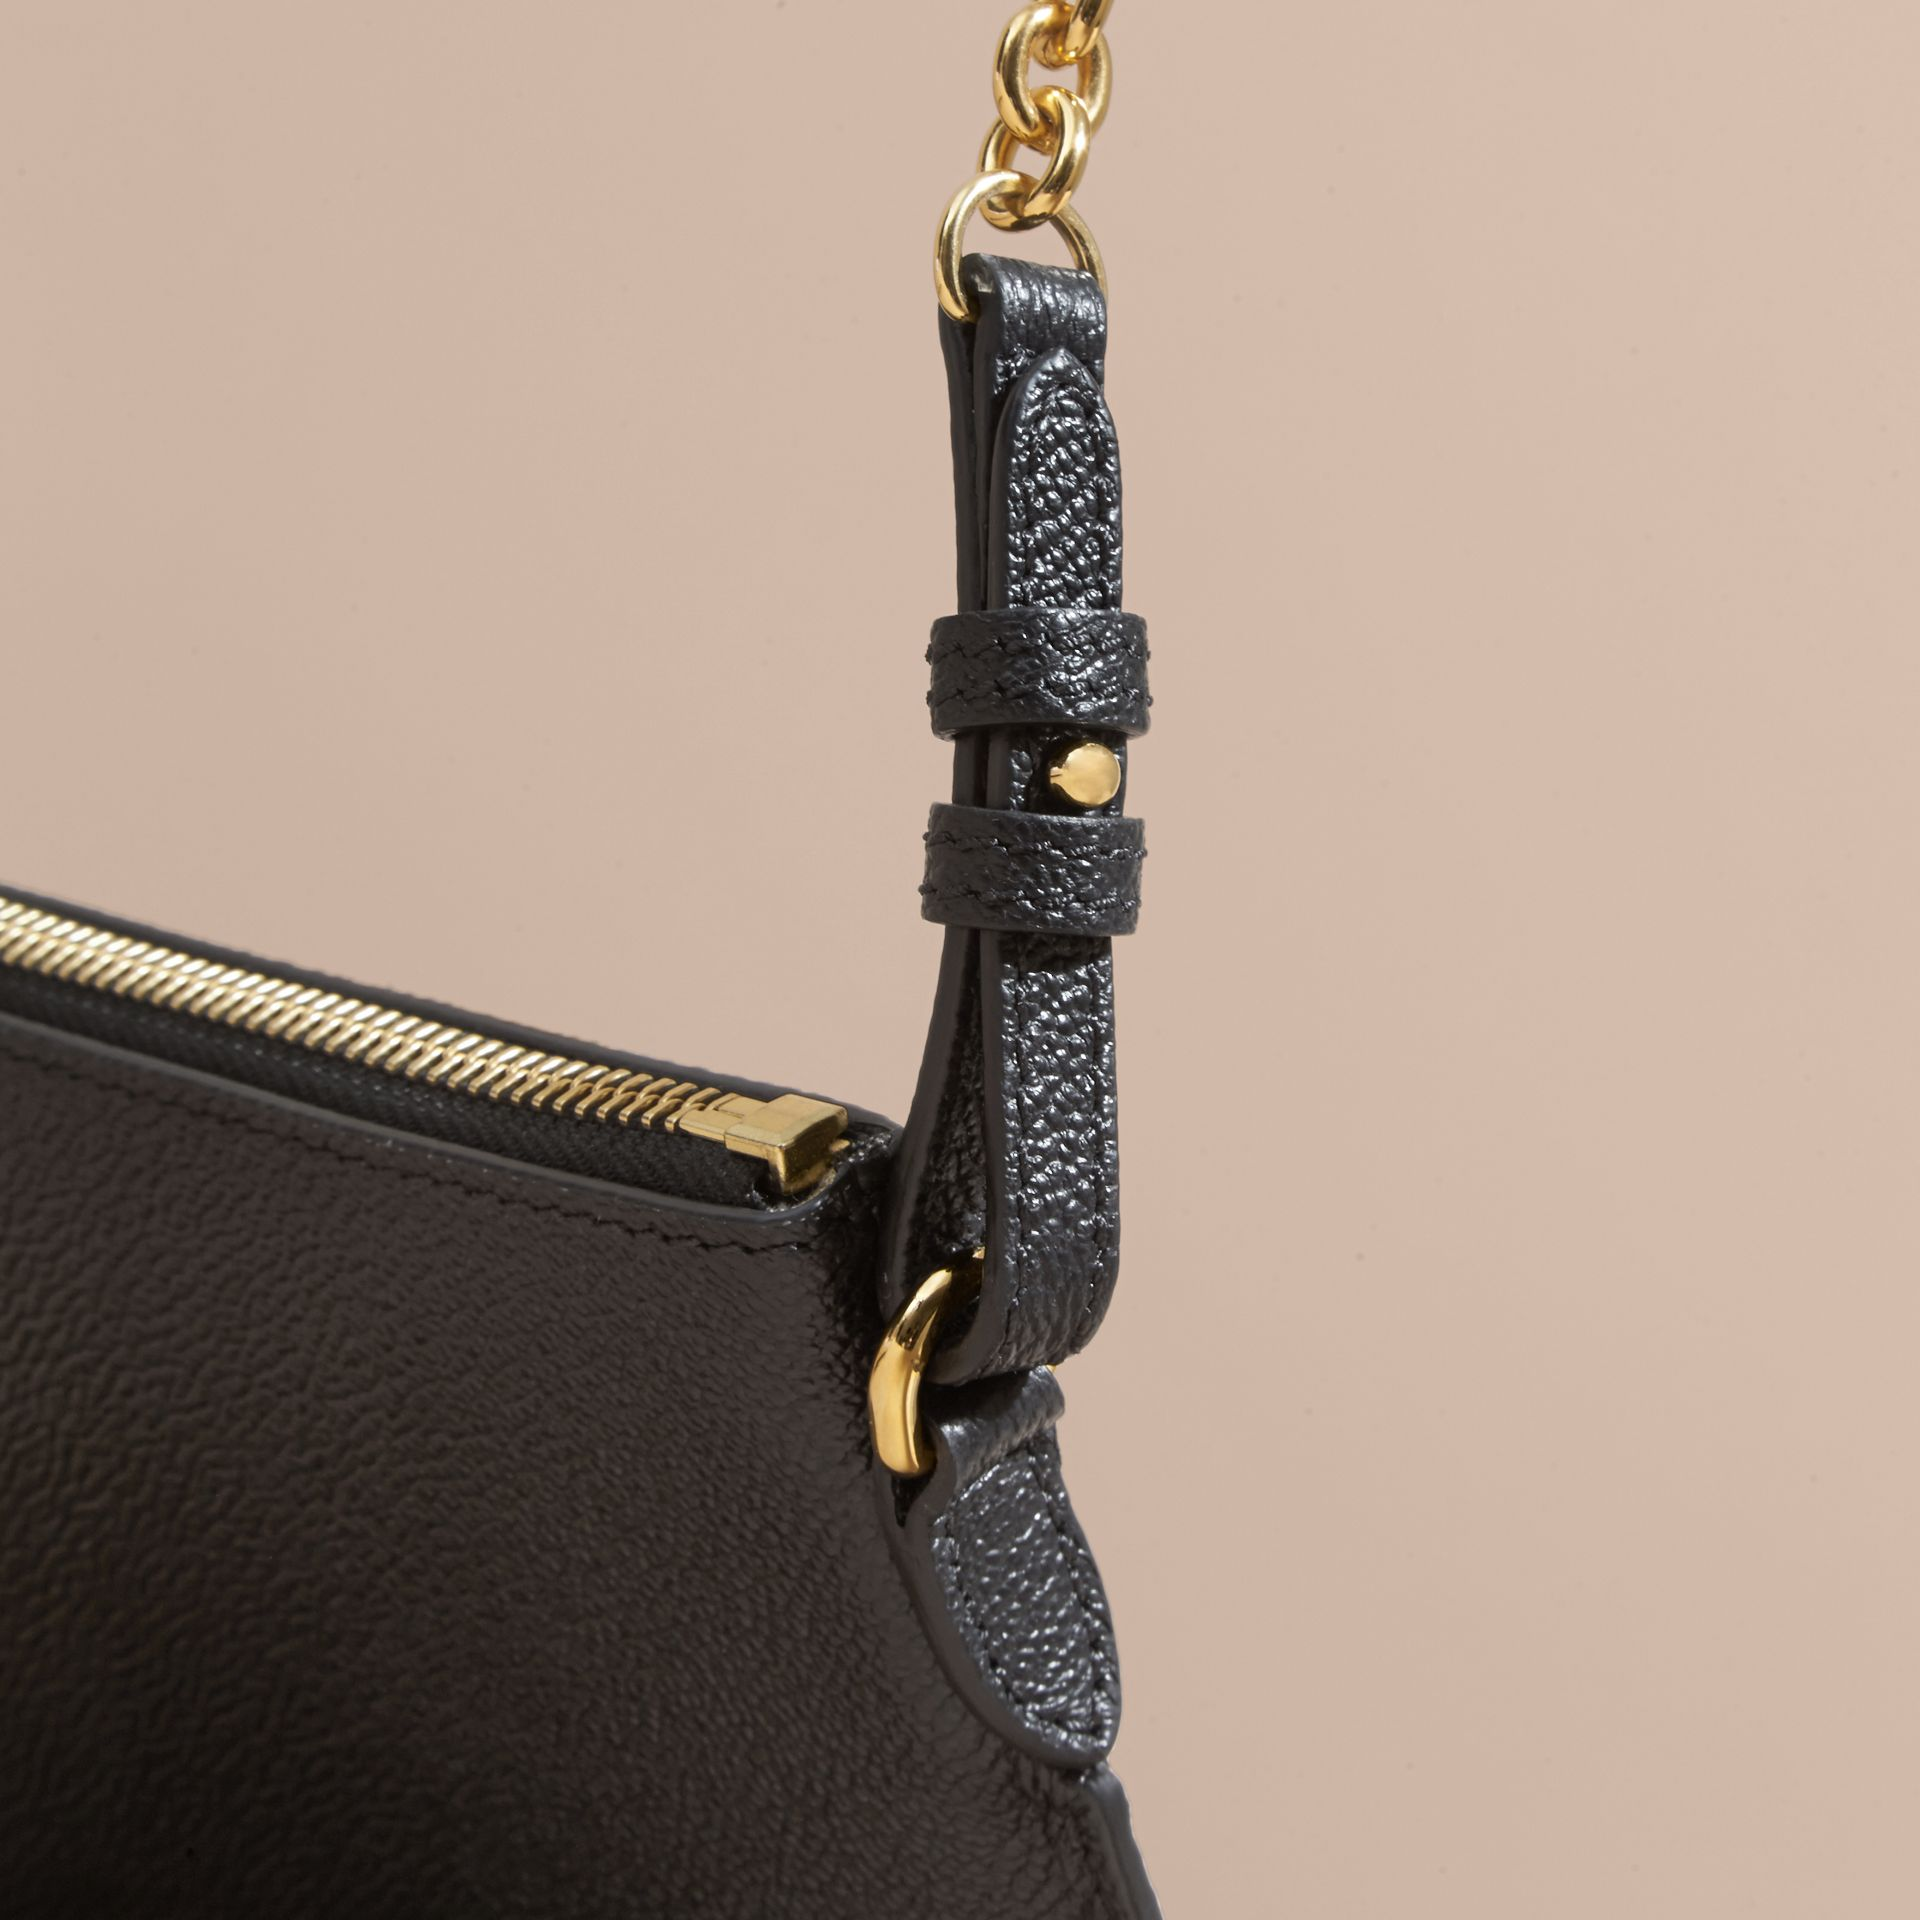 Leather Clutch Bag with Check Lining in Black - Women | Burberry Hong Kong - gallery image 7